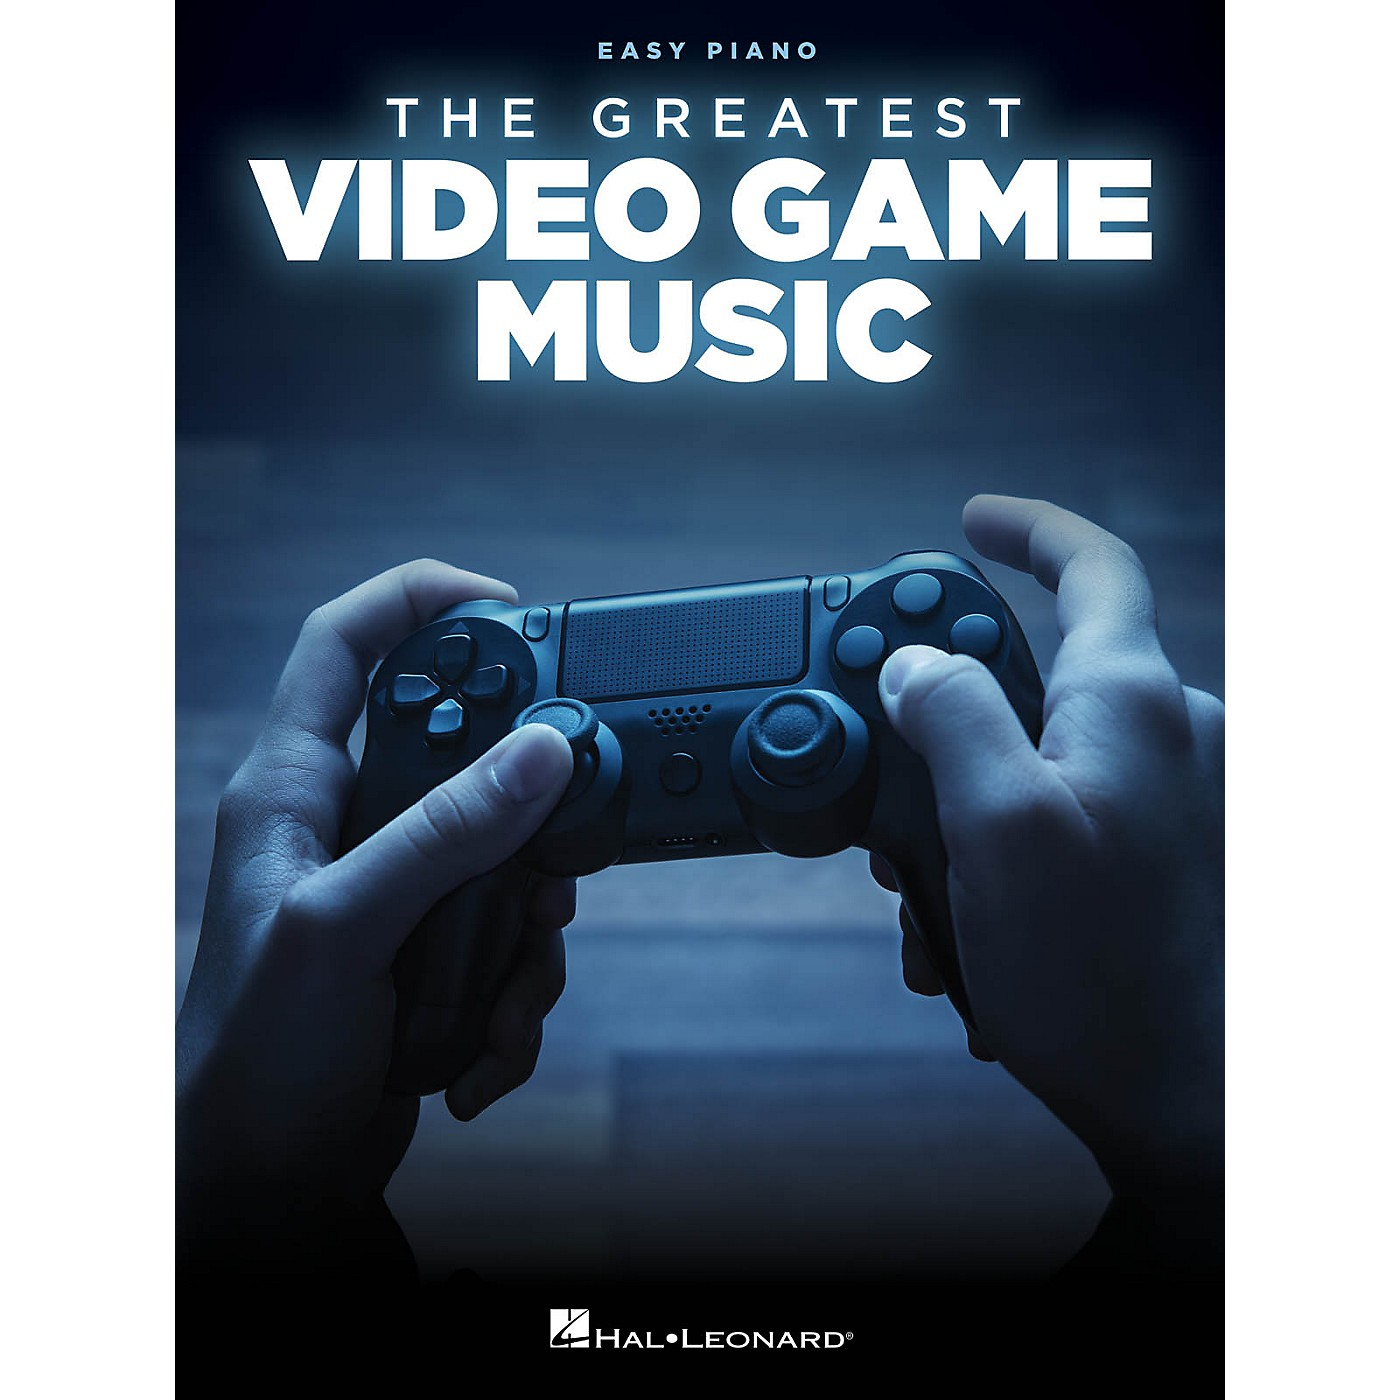 Hal Leonard The Greatest Video Game Music Easy Piano Songbook thumbnail